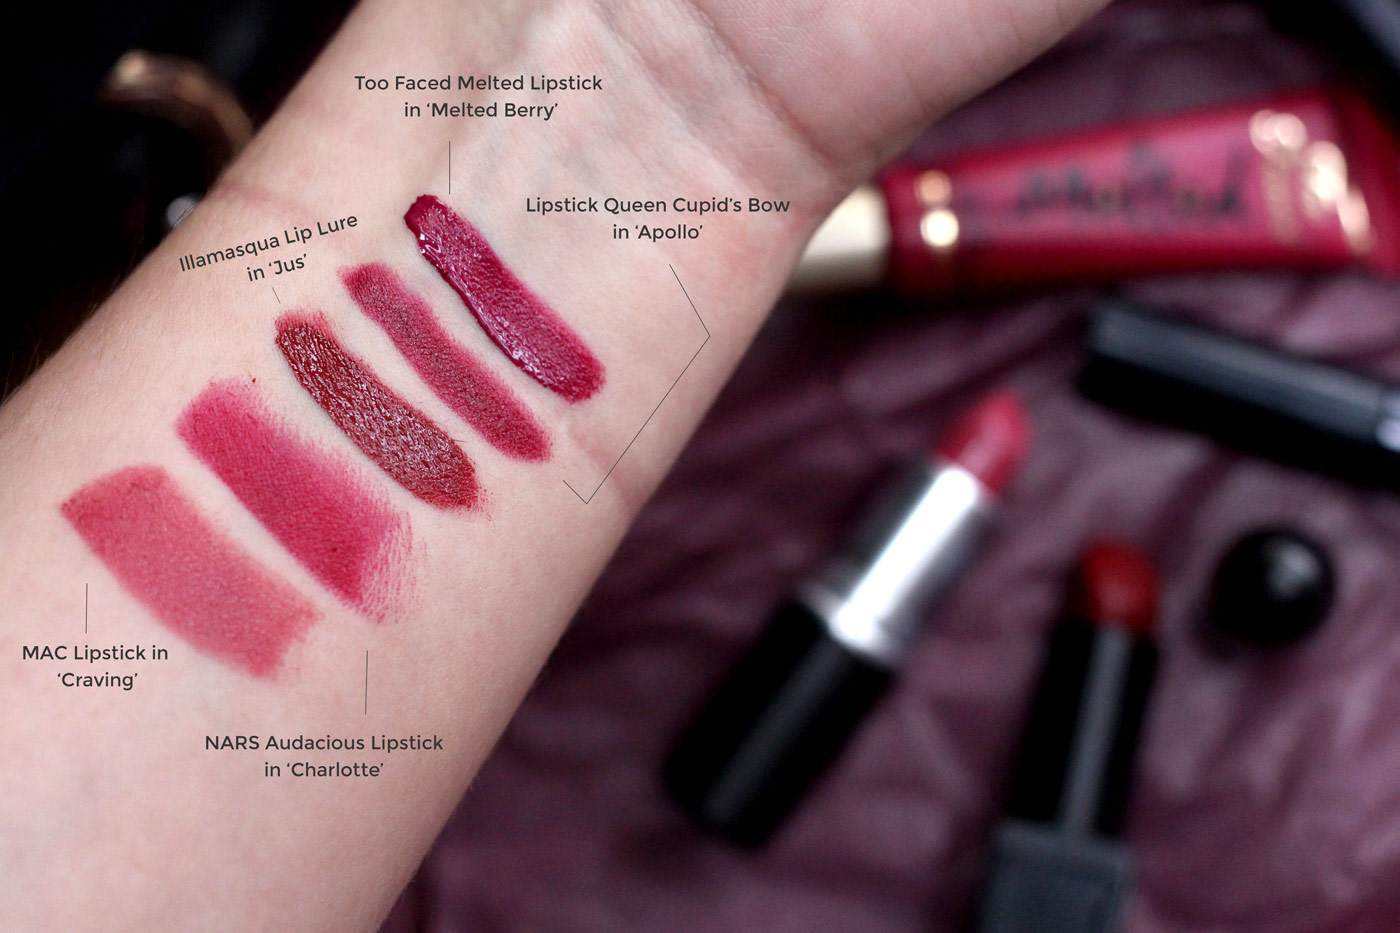 berry-lipsticks-for-autumn-september-mac-craving-nars-charlotte-illamasqua-jus-too-faced-1